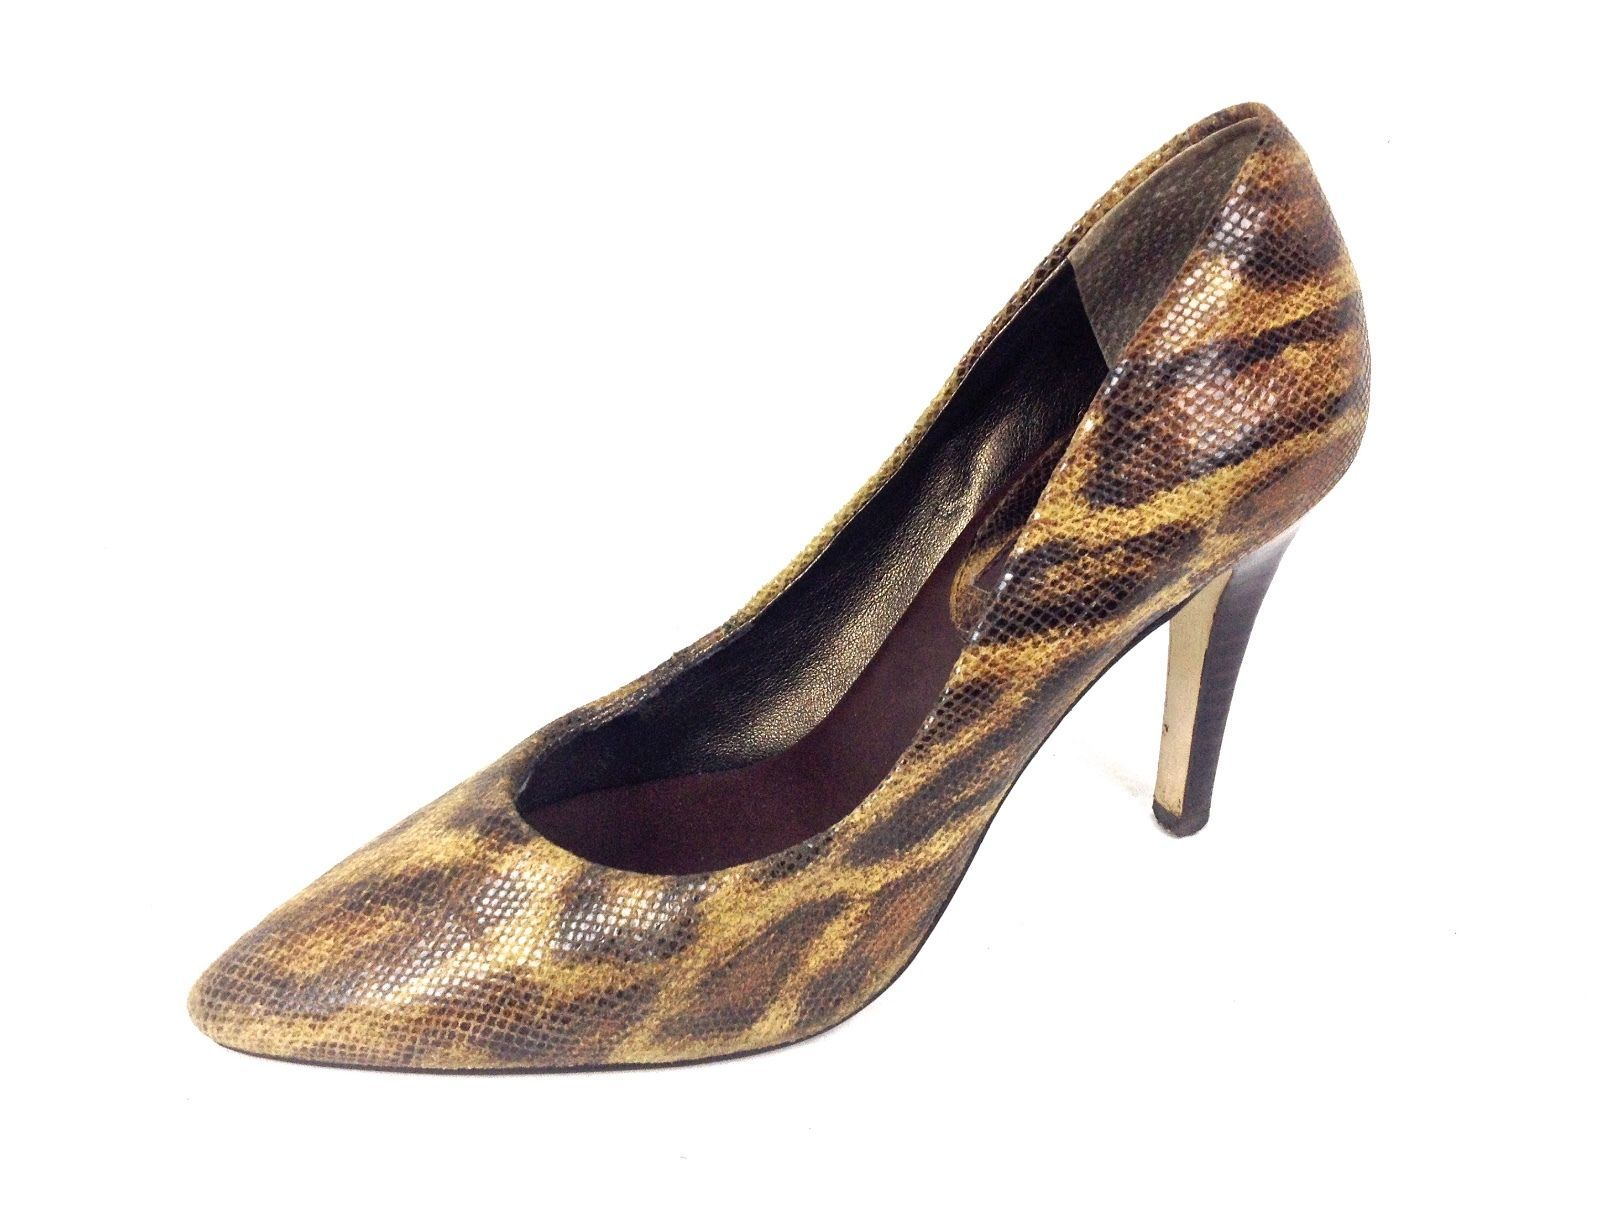 Banana Republic Shoes 6.5 Womens Brown Leather Heels For Sale - Item #1474110